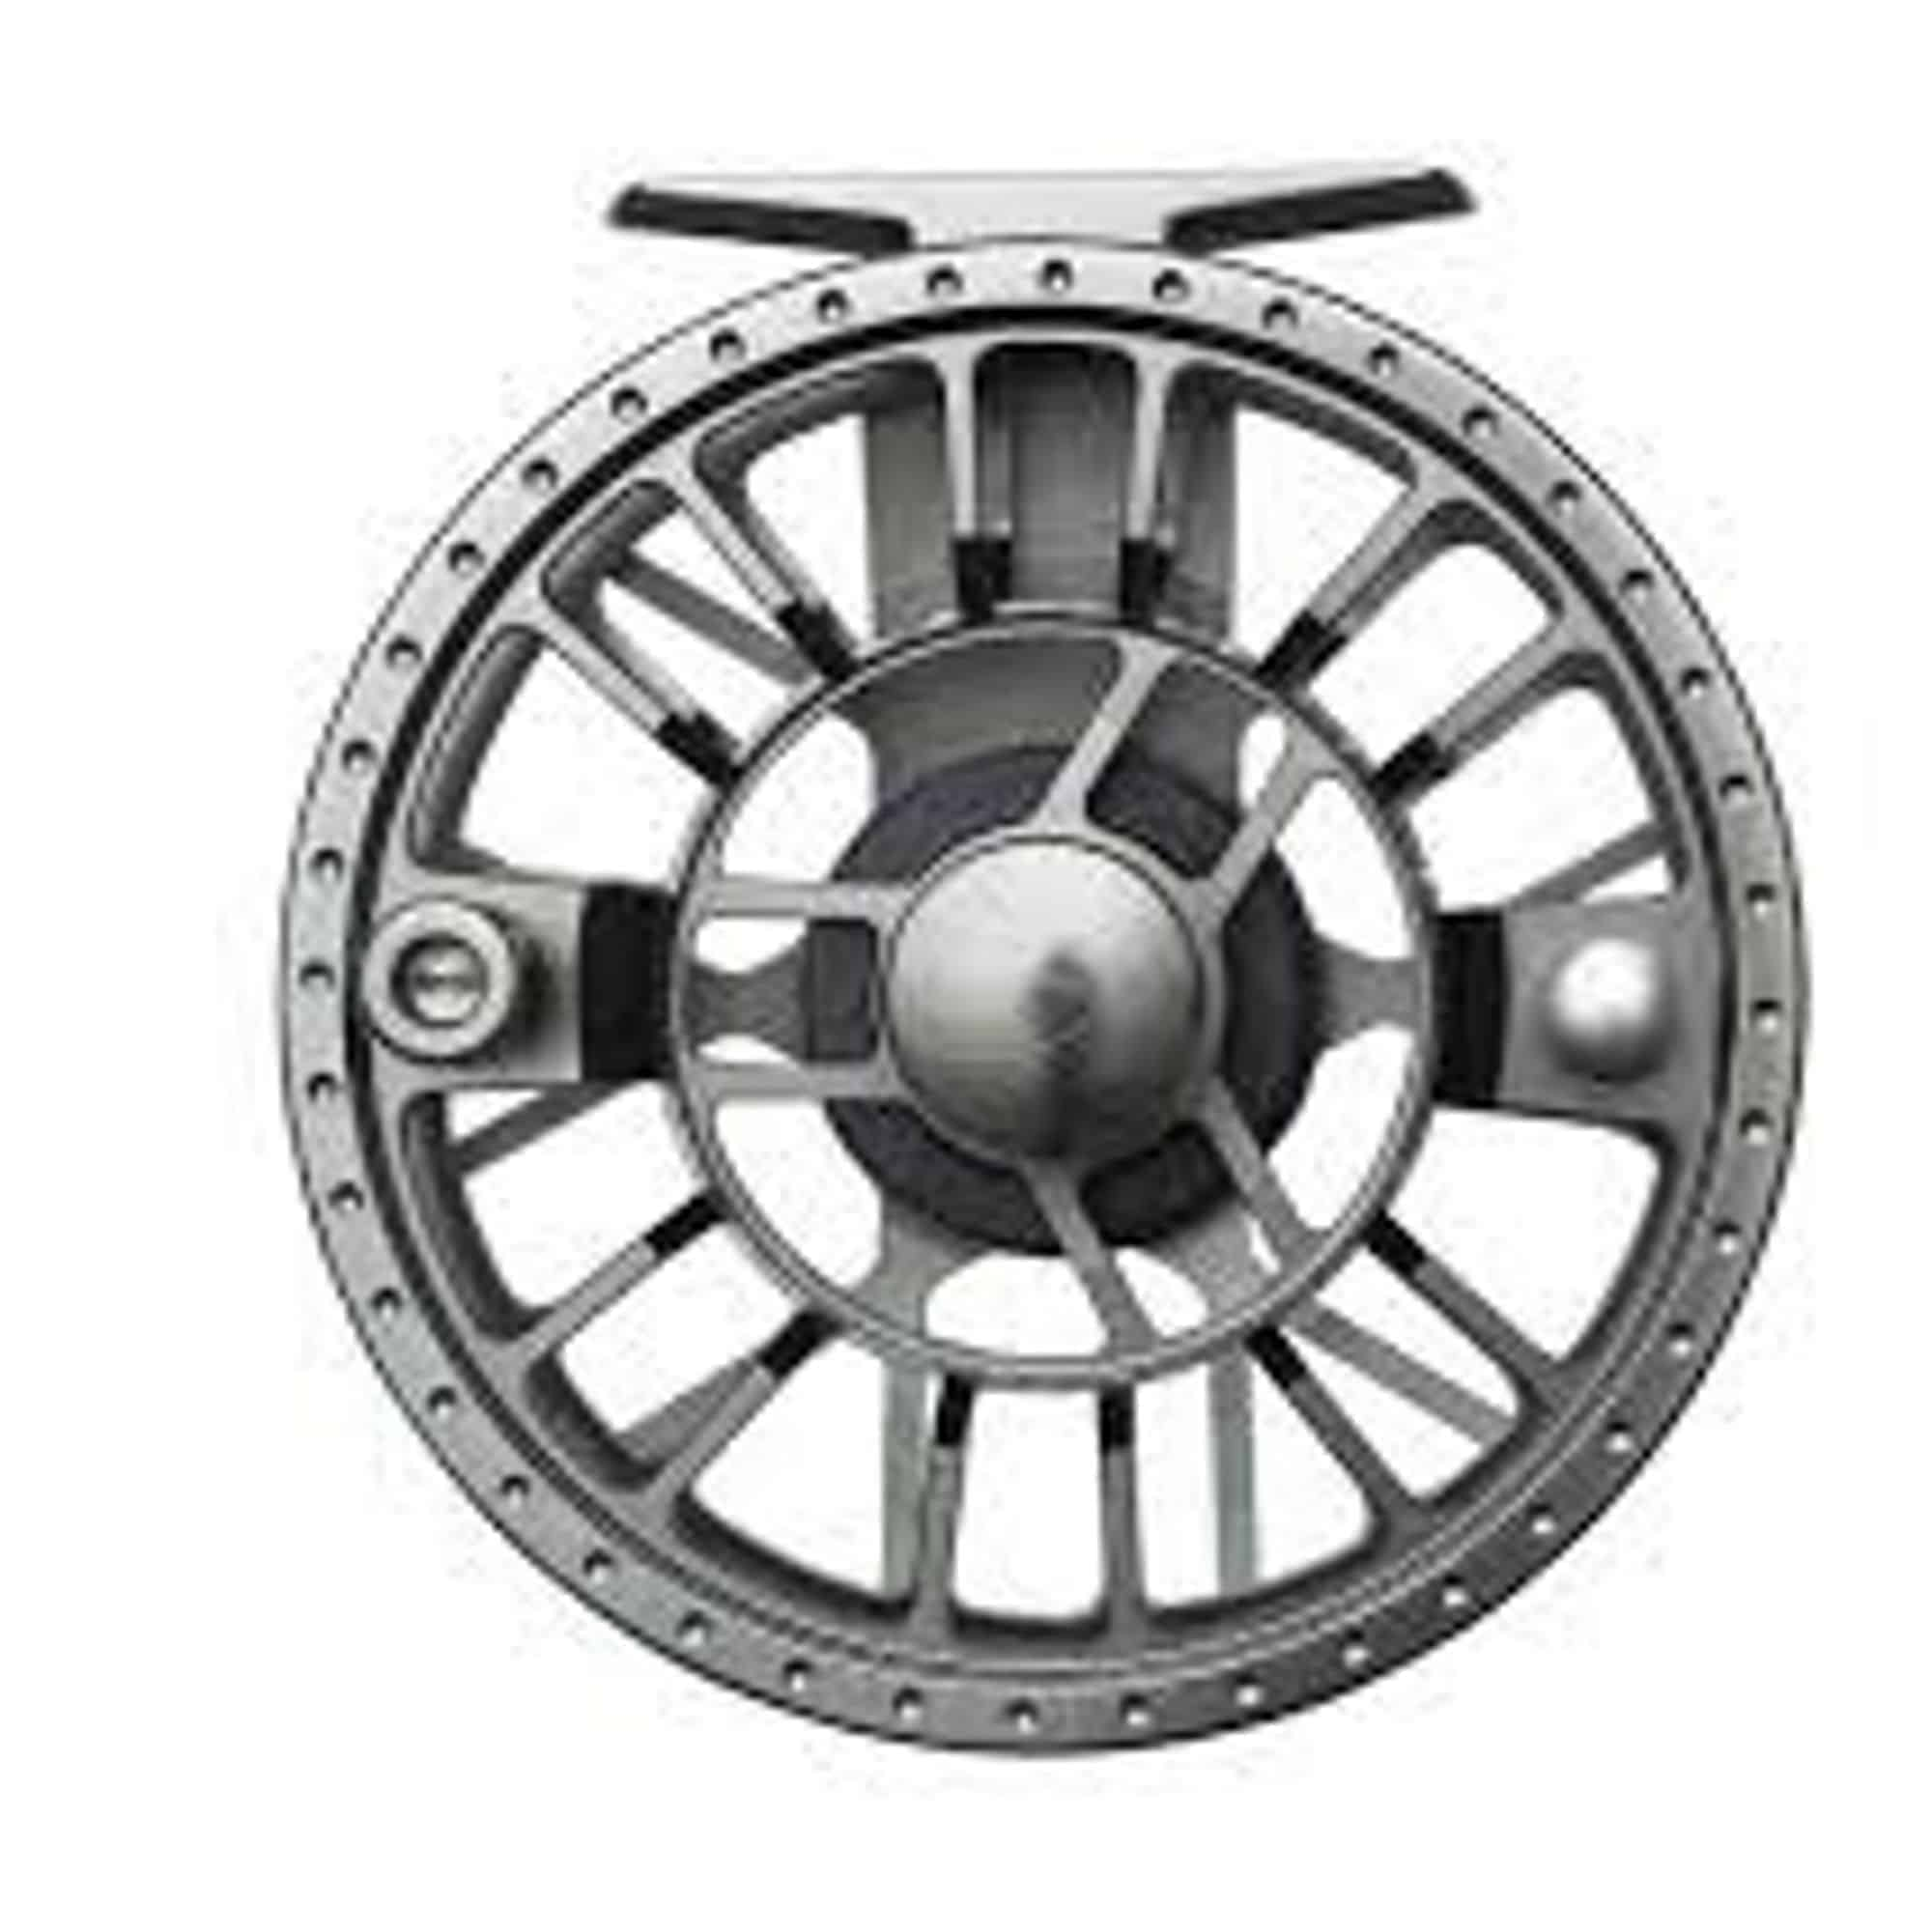 2019 SCIERRA TRAXION 1 LW FLY REEL FOR GAME TROUT SALMON FLY ROD LINE FISHING